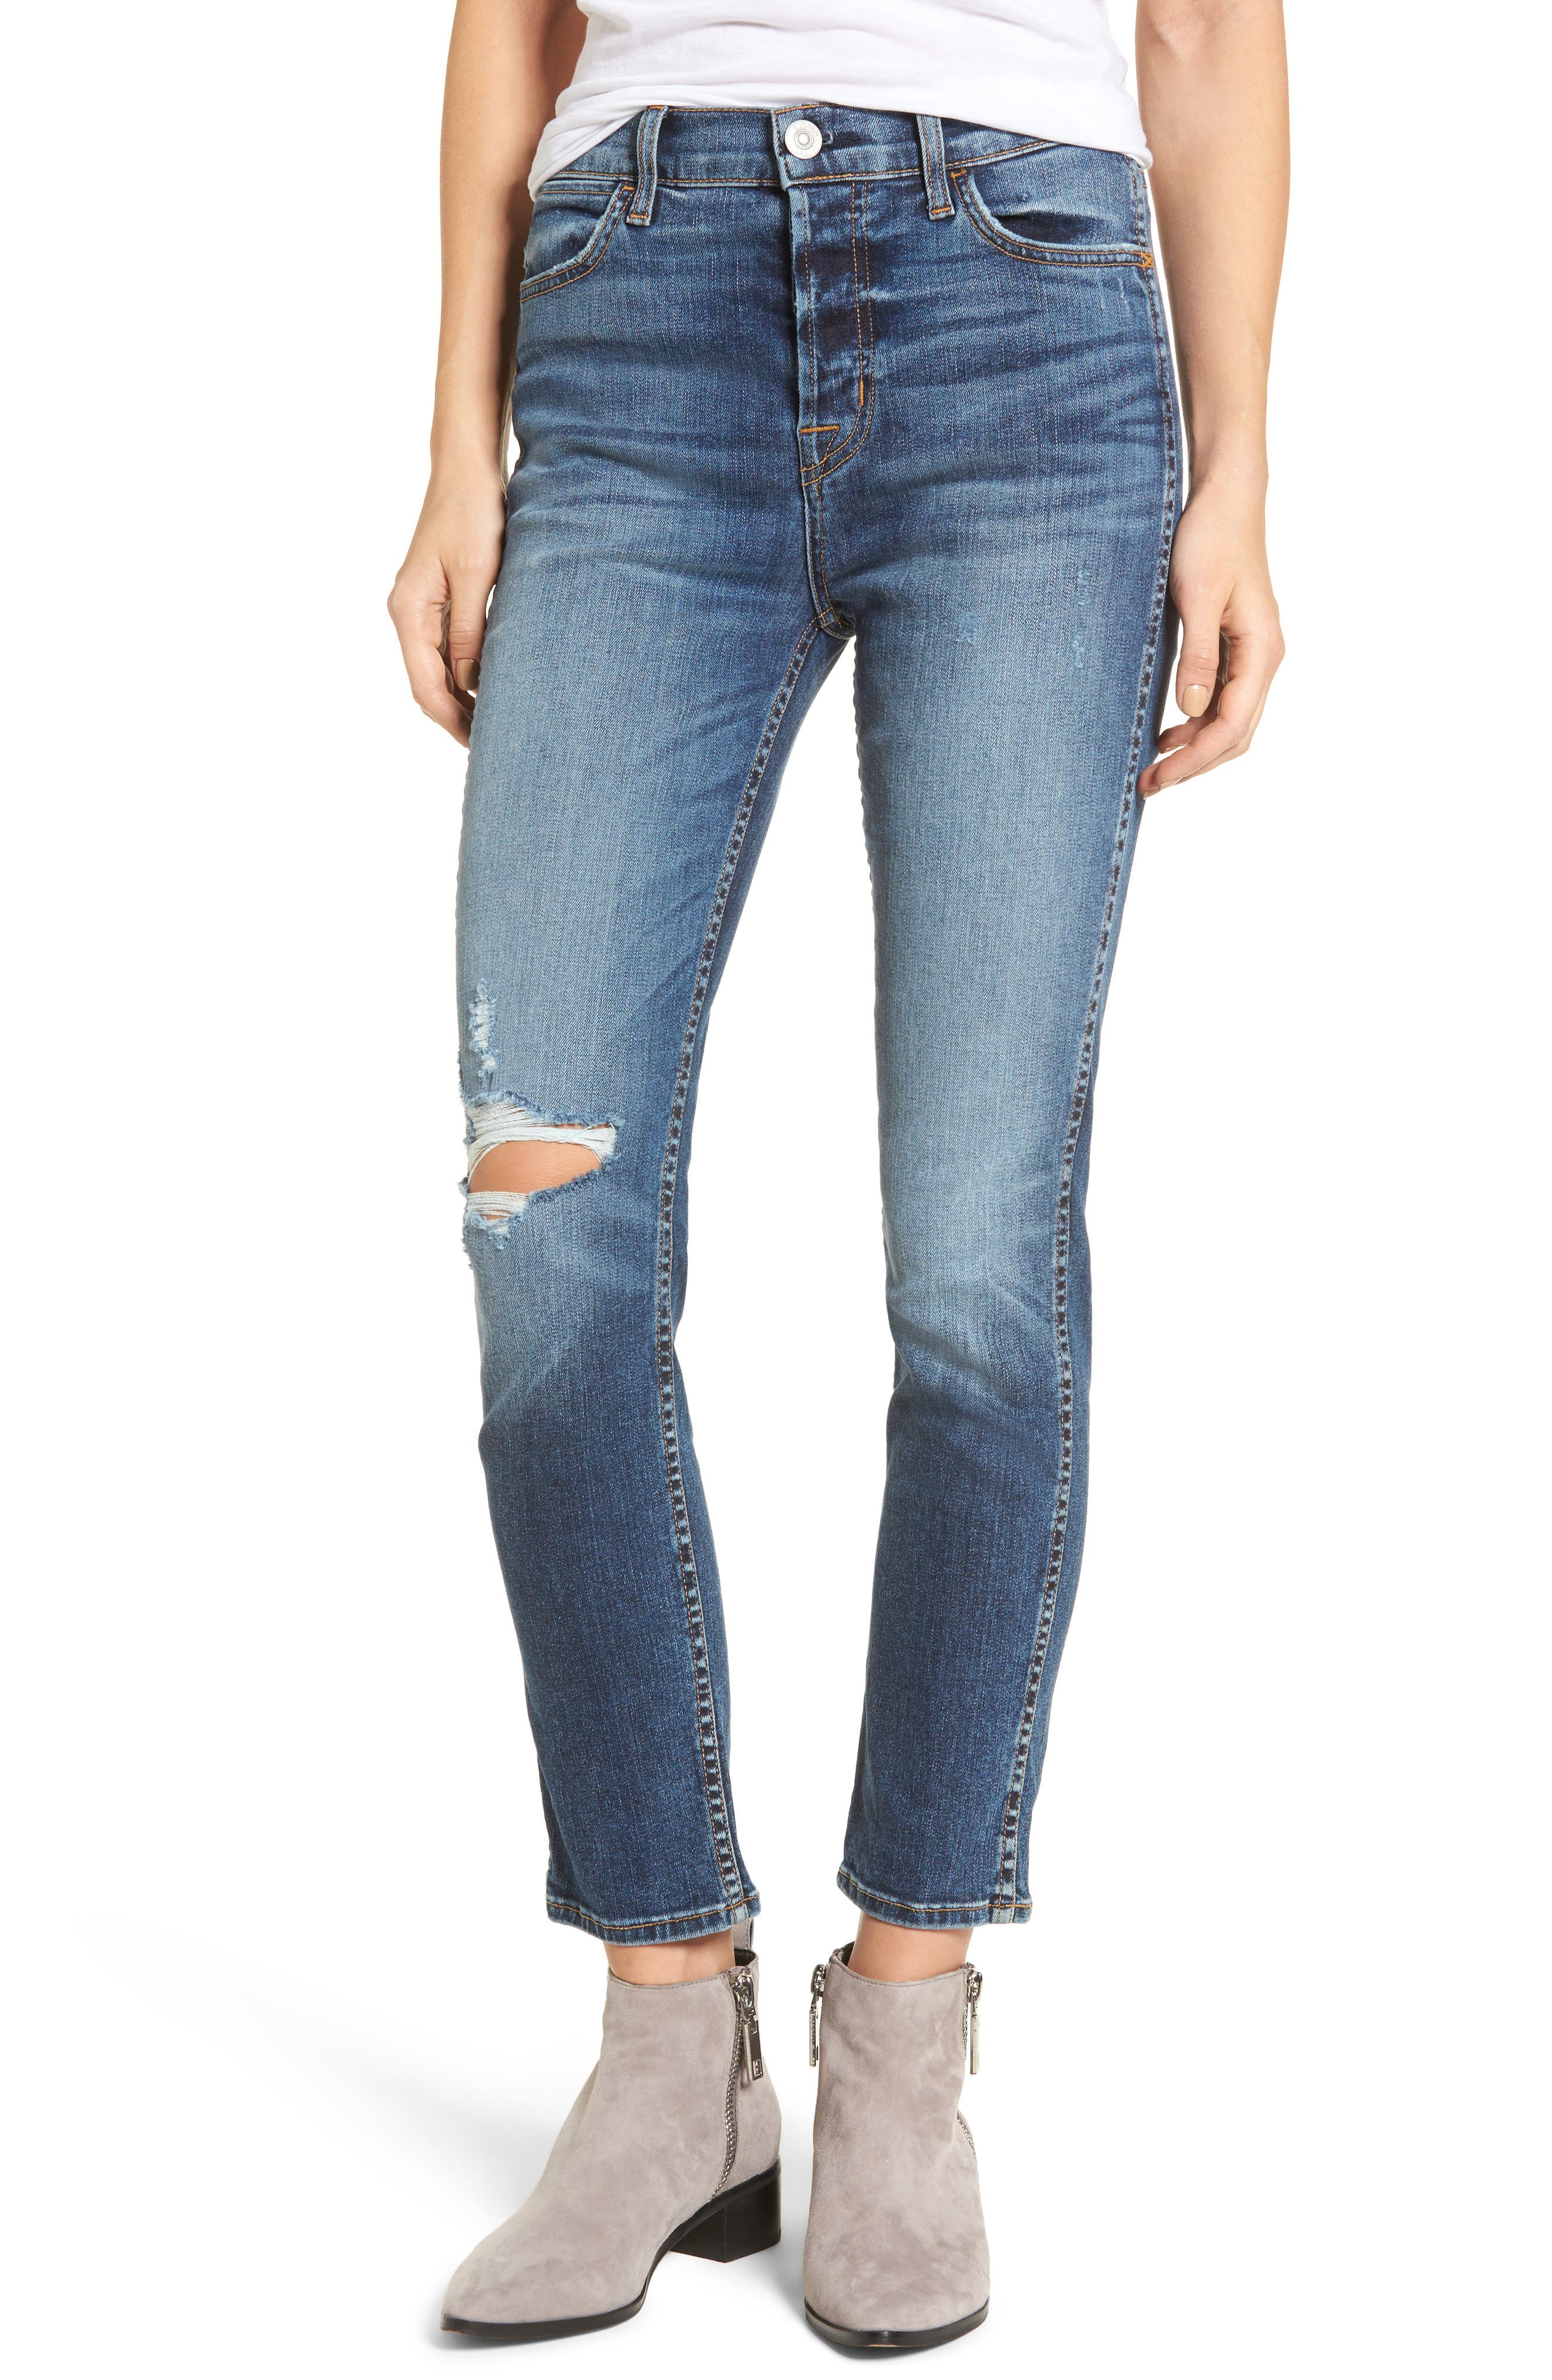 Alternate Image 1 Selected - Hudson Jeans Holly High Waist Ankle Skinny Jeans